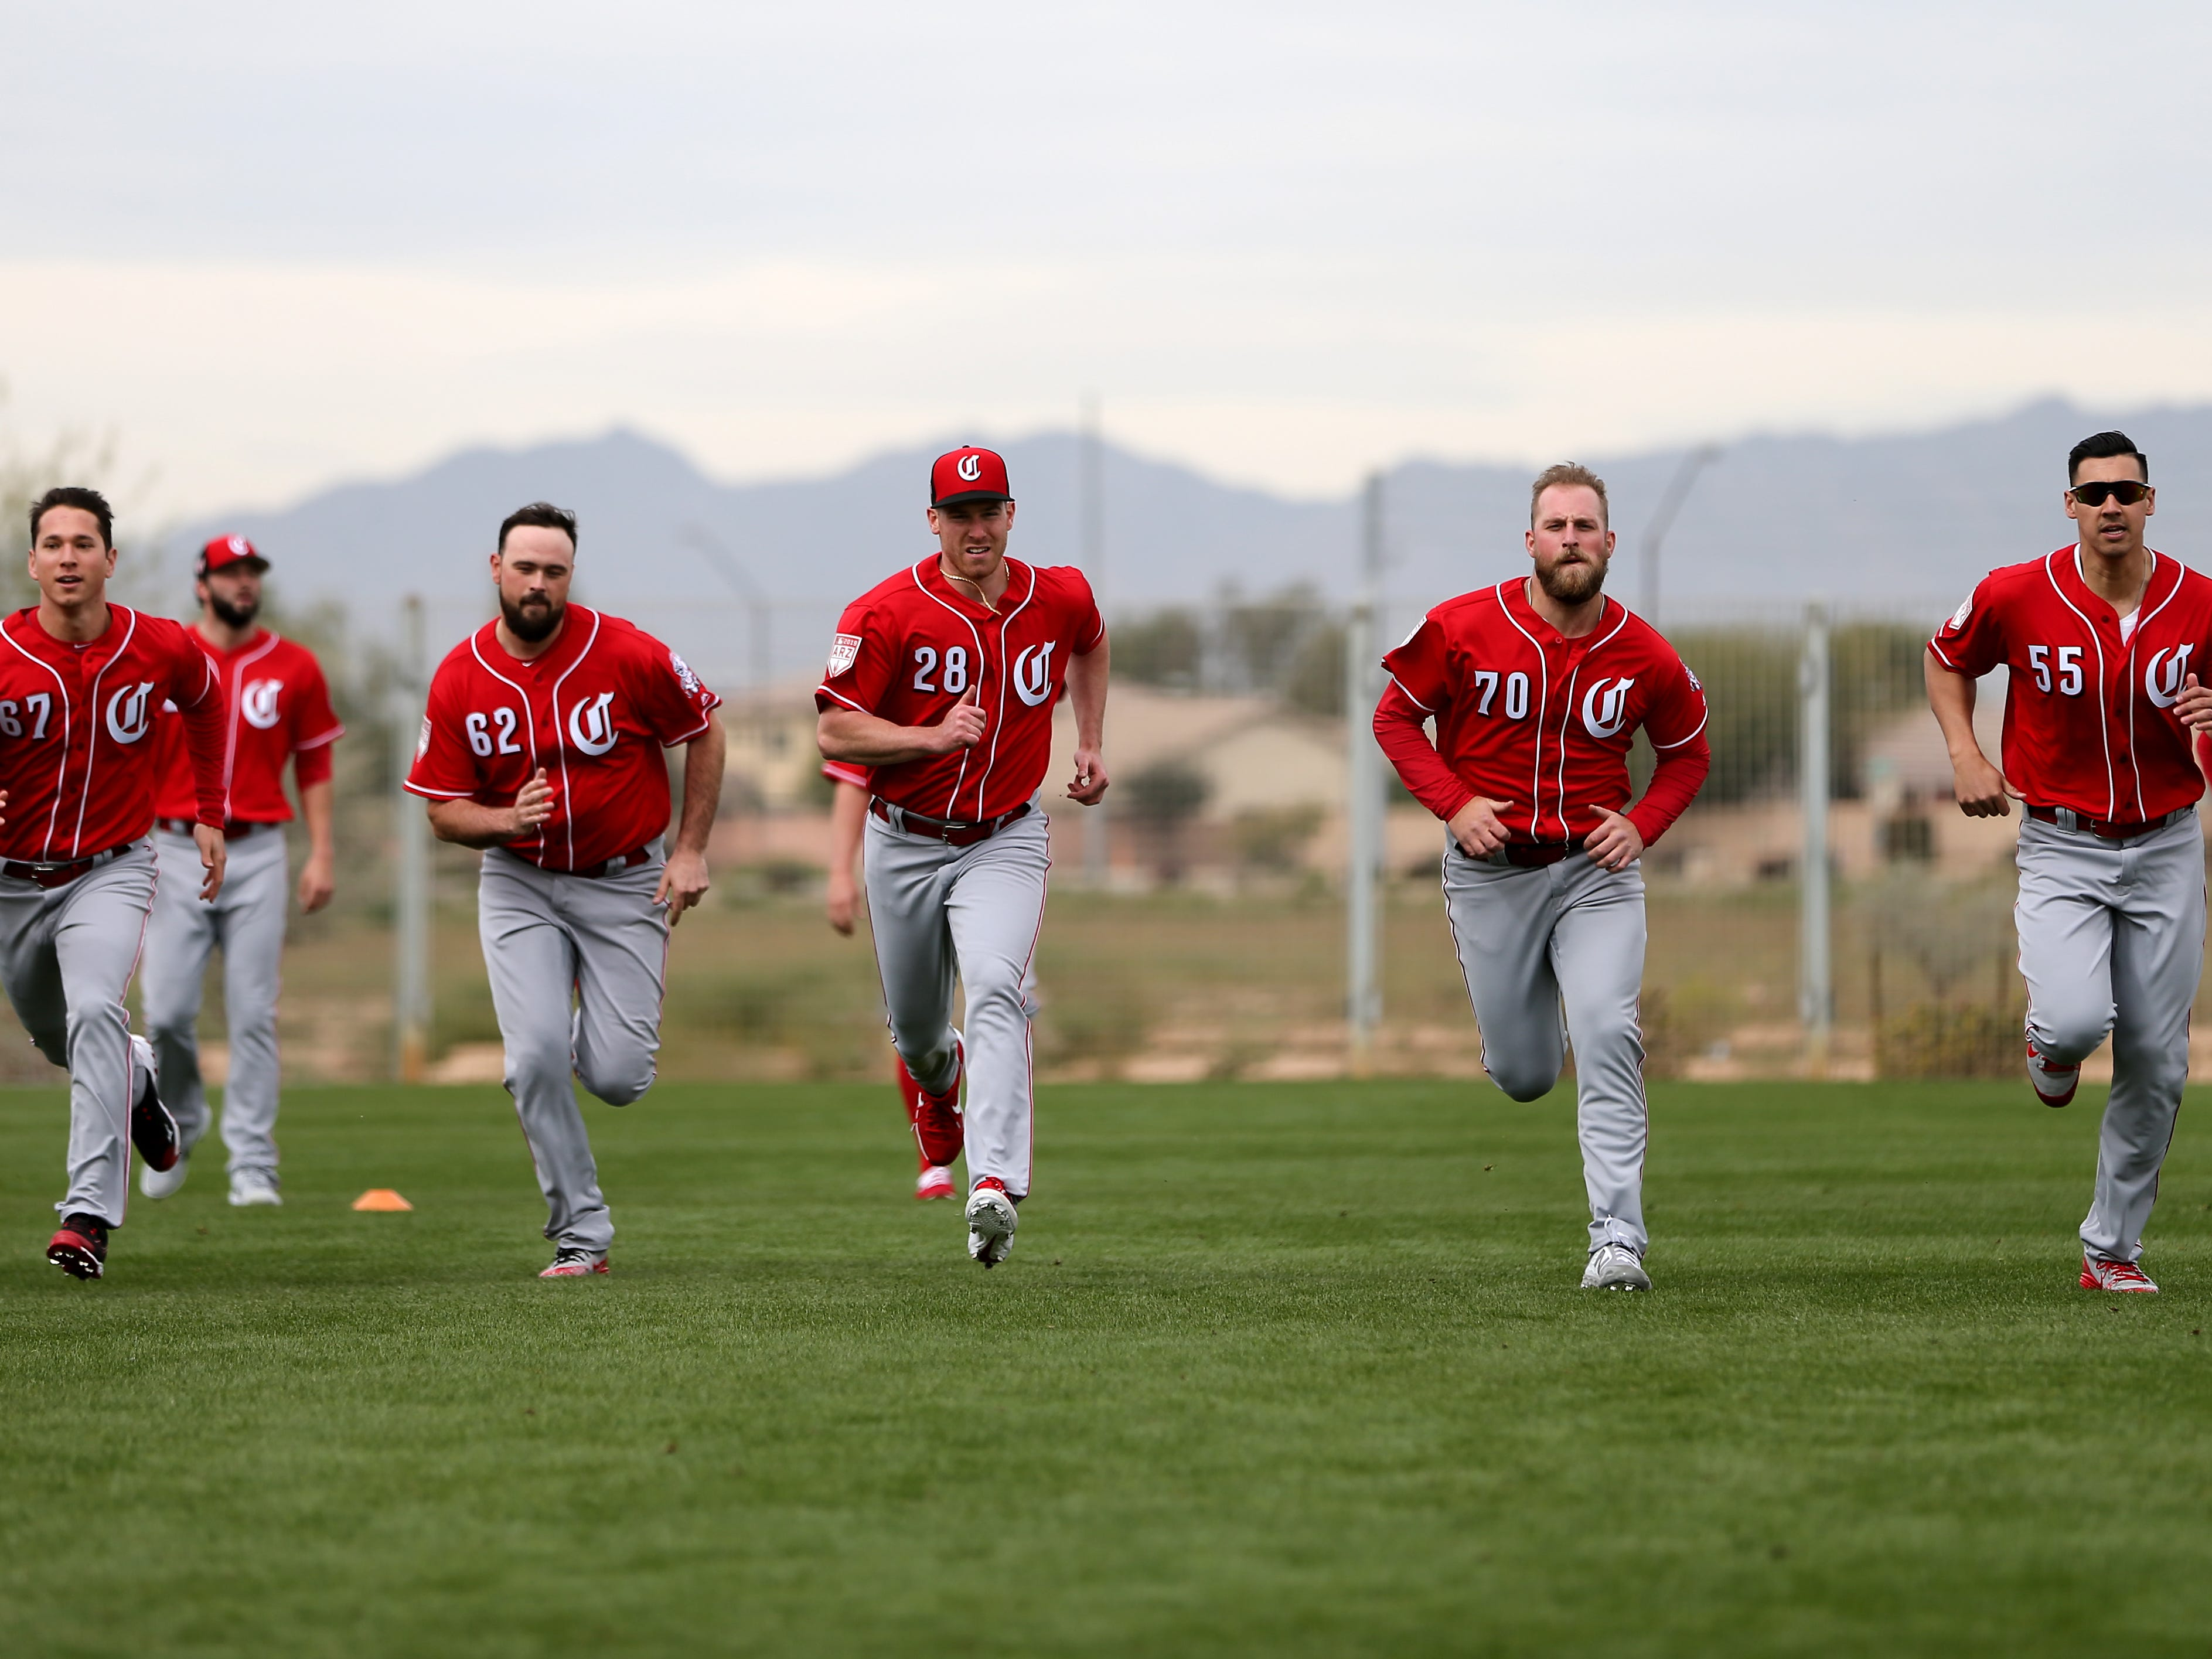 From left: Cincinnati Reds pitchers Matt Bowman, Jackson Stephens (62), Anthony DeSclafani (28), Ian Krol (70) and Robert Stephenson (55) run sprints, Wednesday, Feb. 13, 2019, at the Cincinnati Reds spring training facility in Goodyear, Arizona.